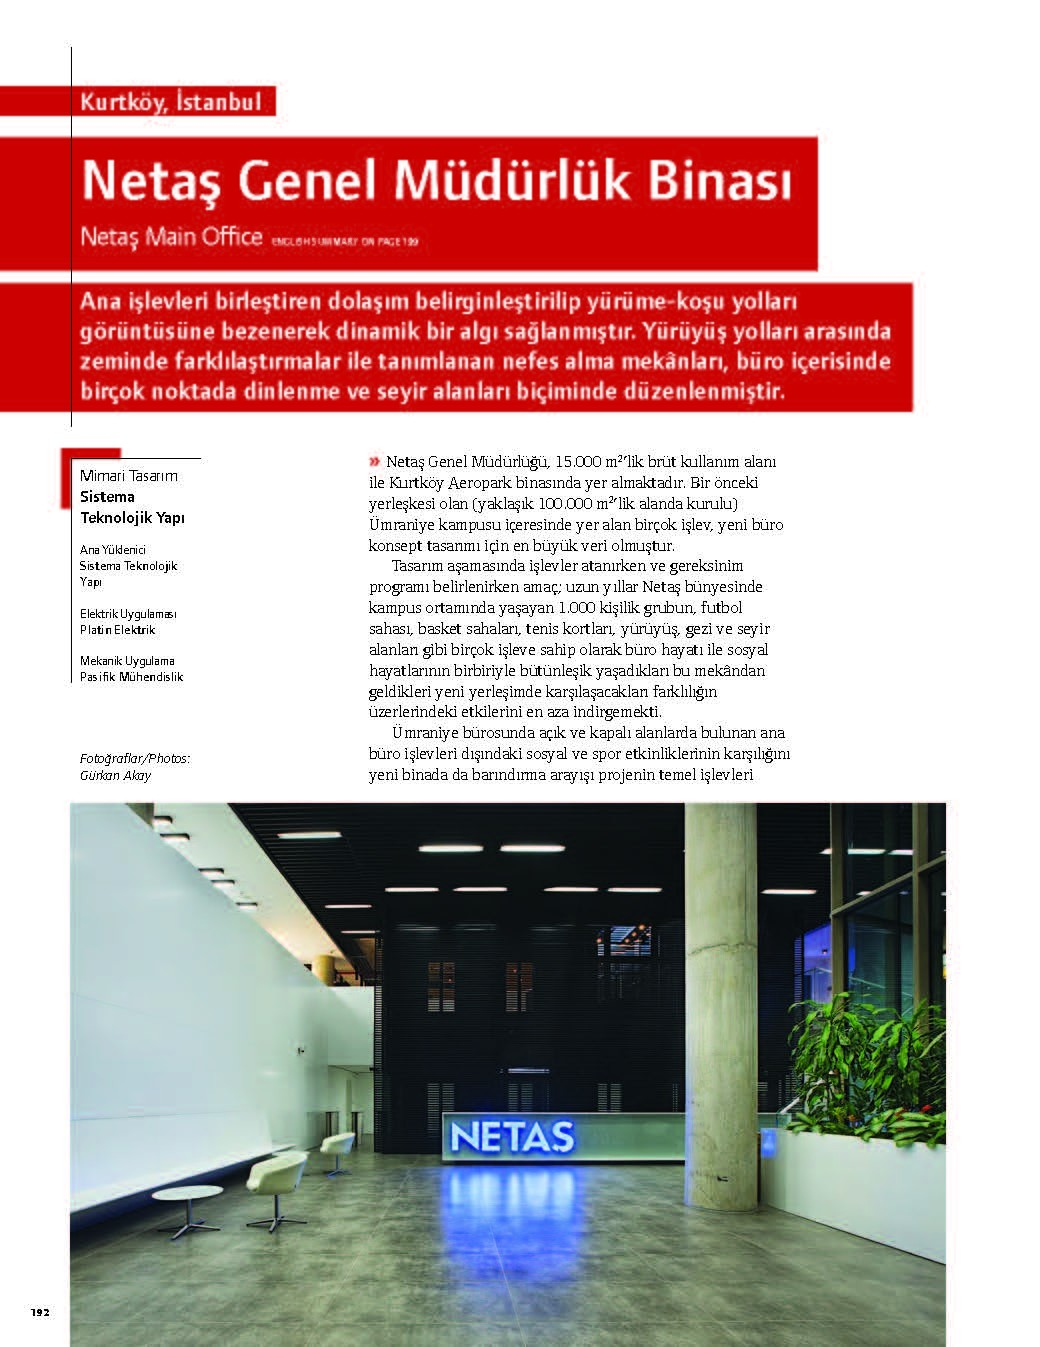 Netaş Main Office